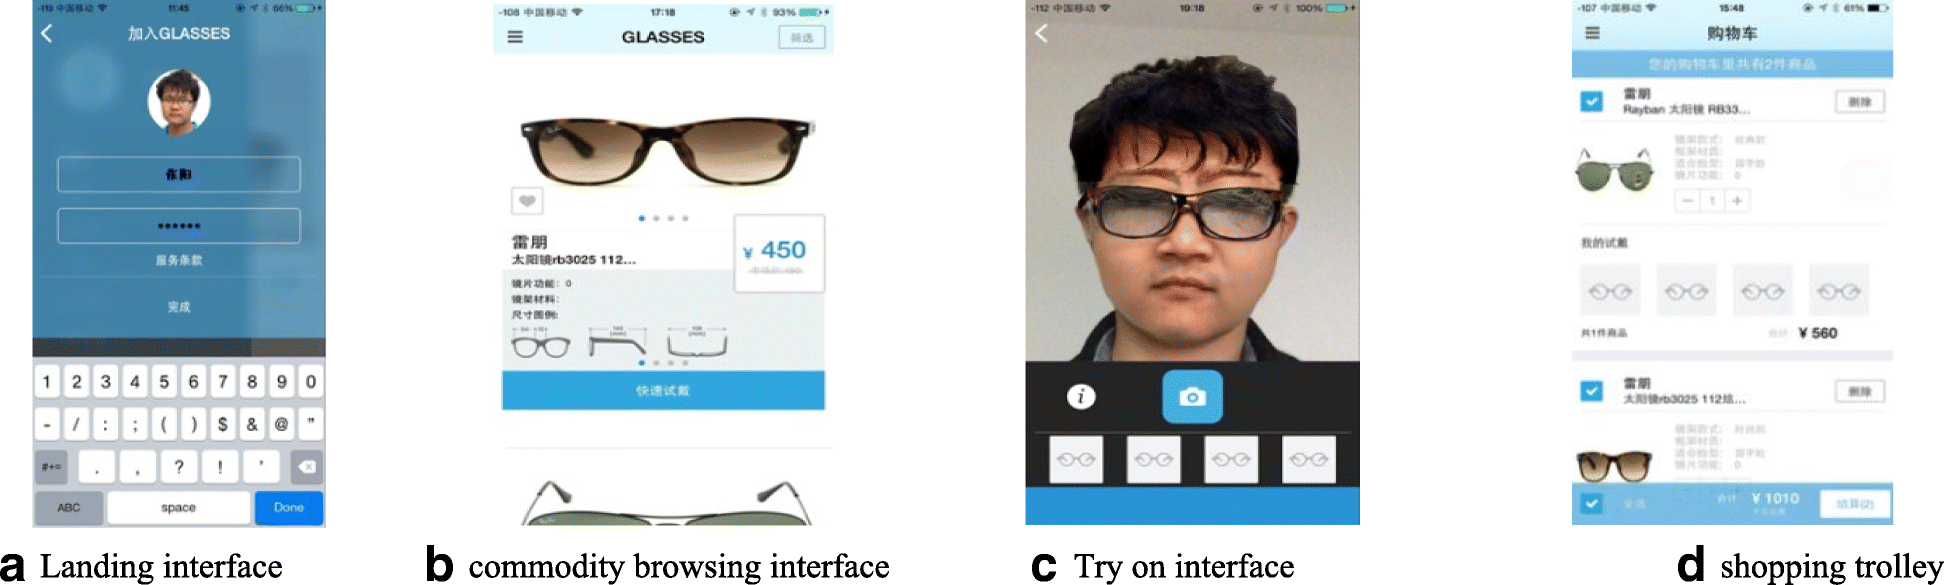 09fb42477547 Augmented reality virtual glasses try-on technology based on iOS ...